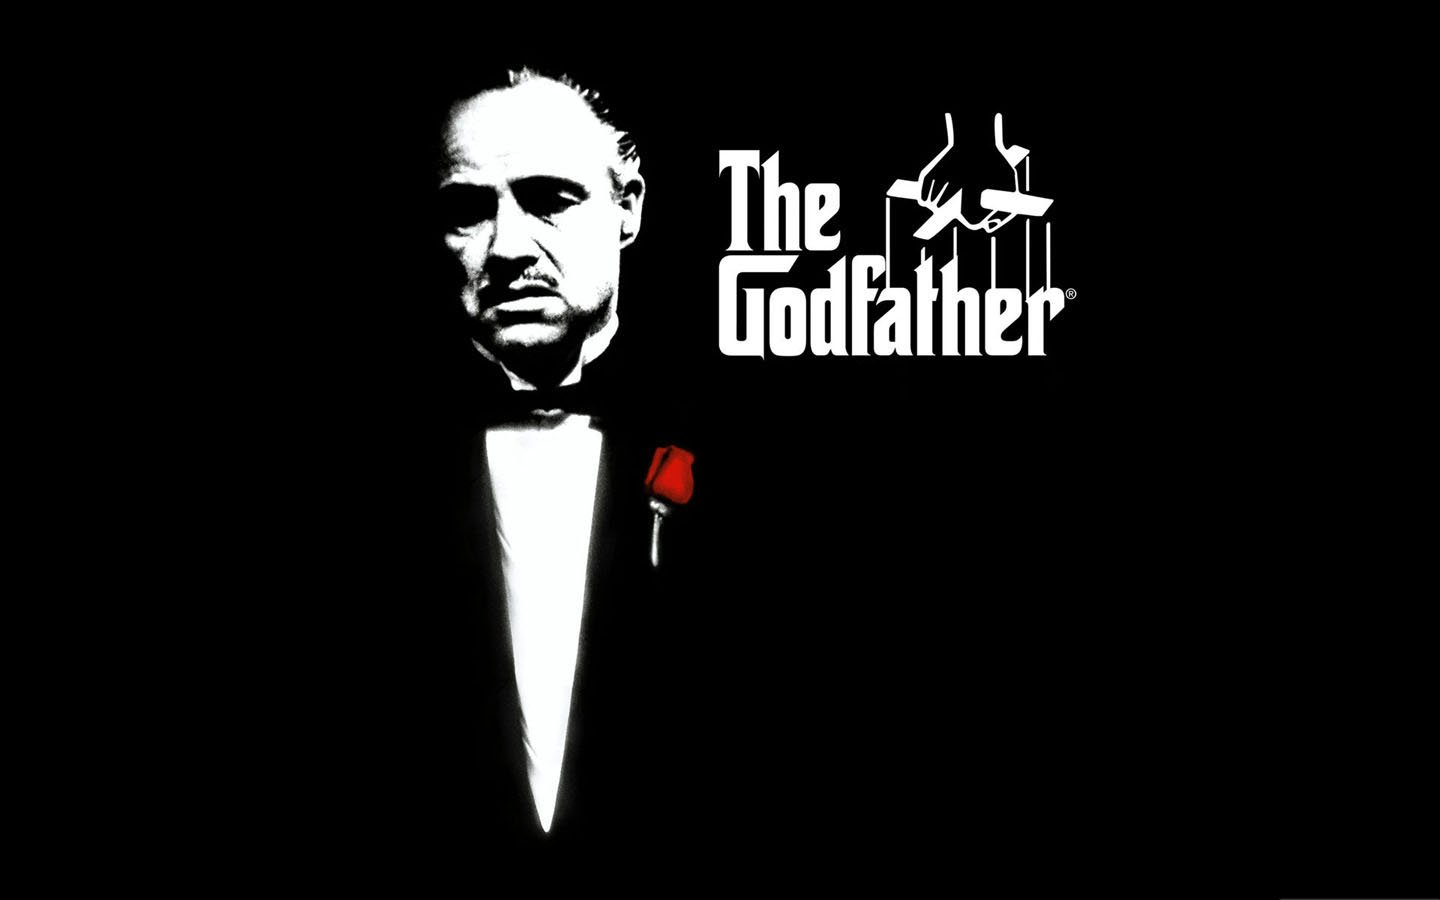 the godfather Wallpaper and Background Image | 1440x900 ...